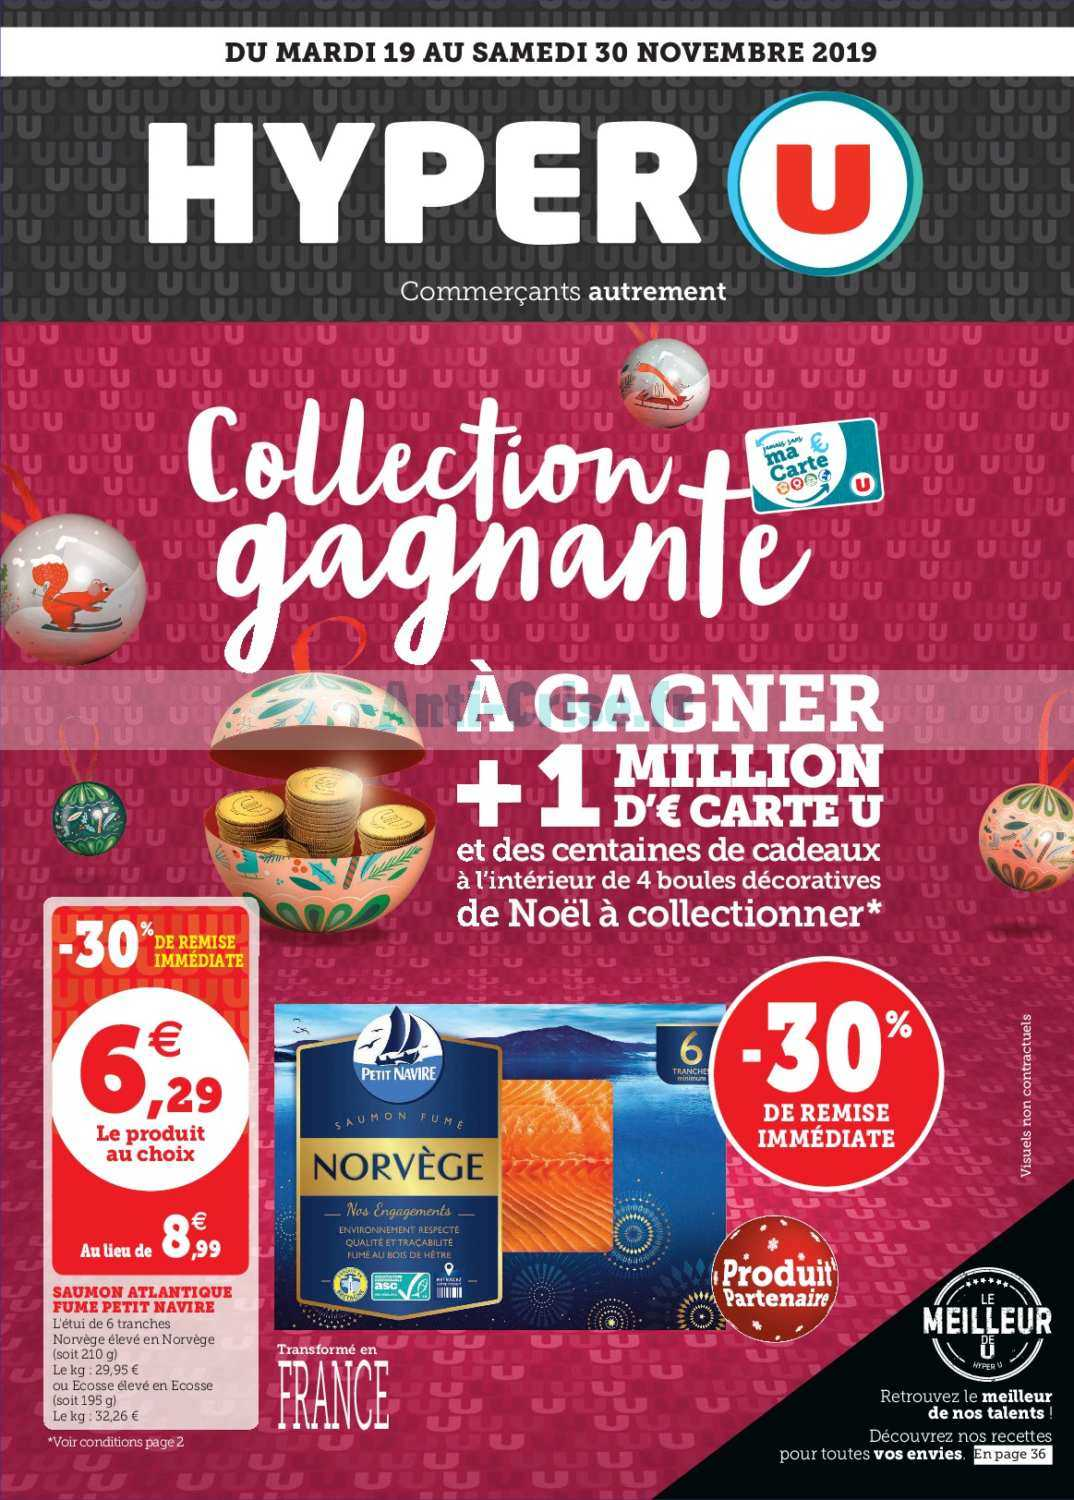 Catalogue Hyper U du 19 au 30 novembre 2019